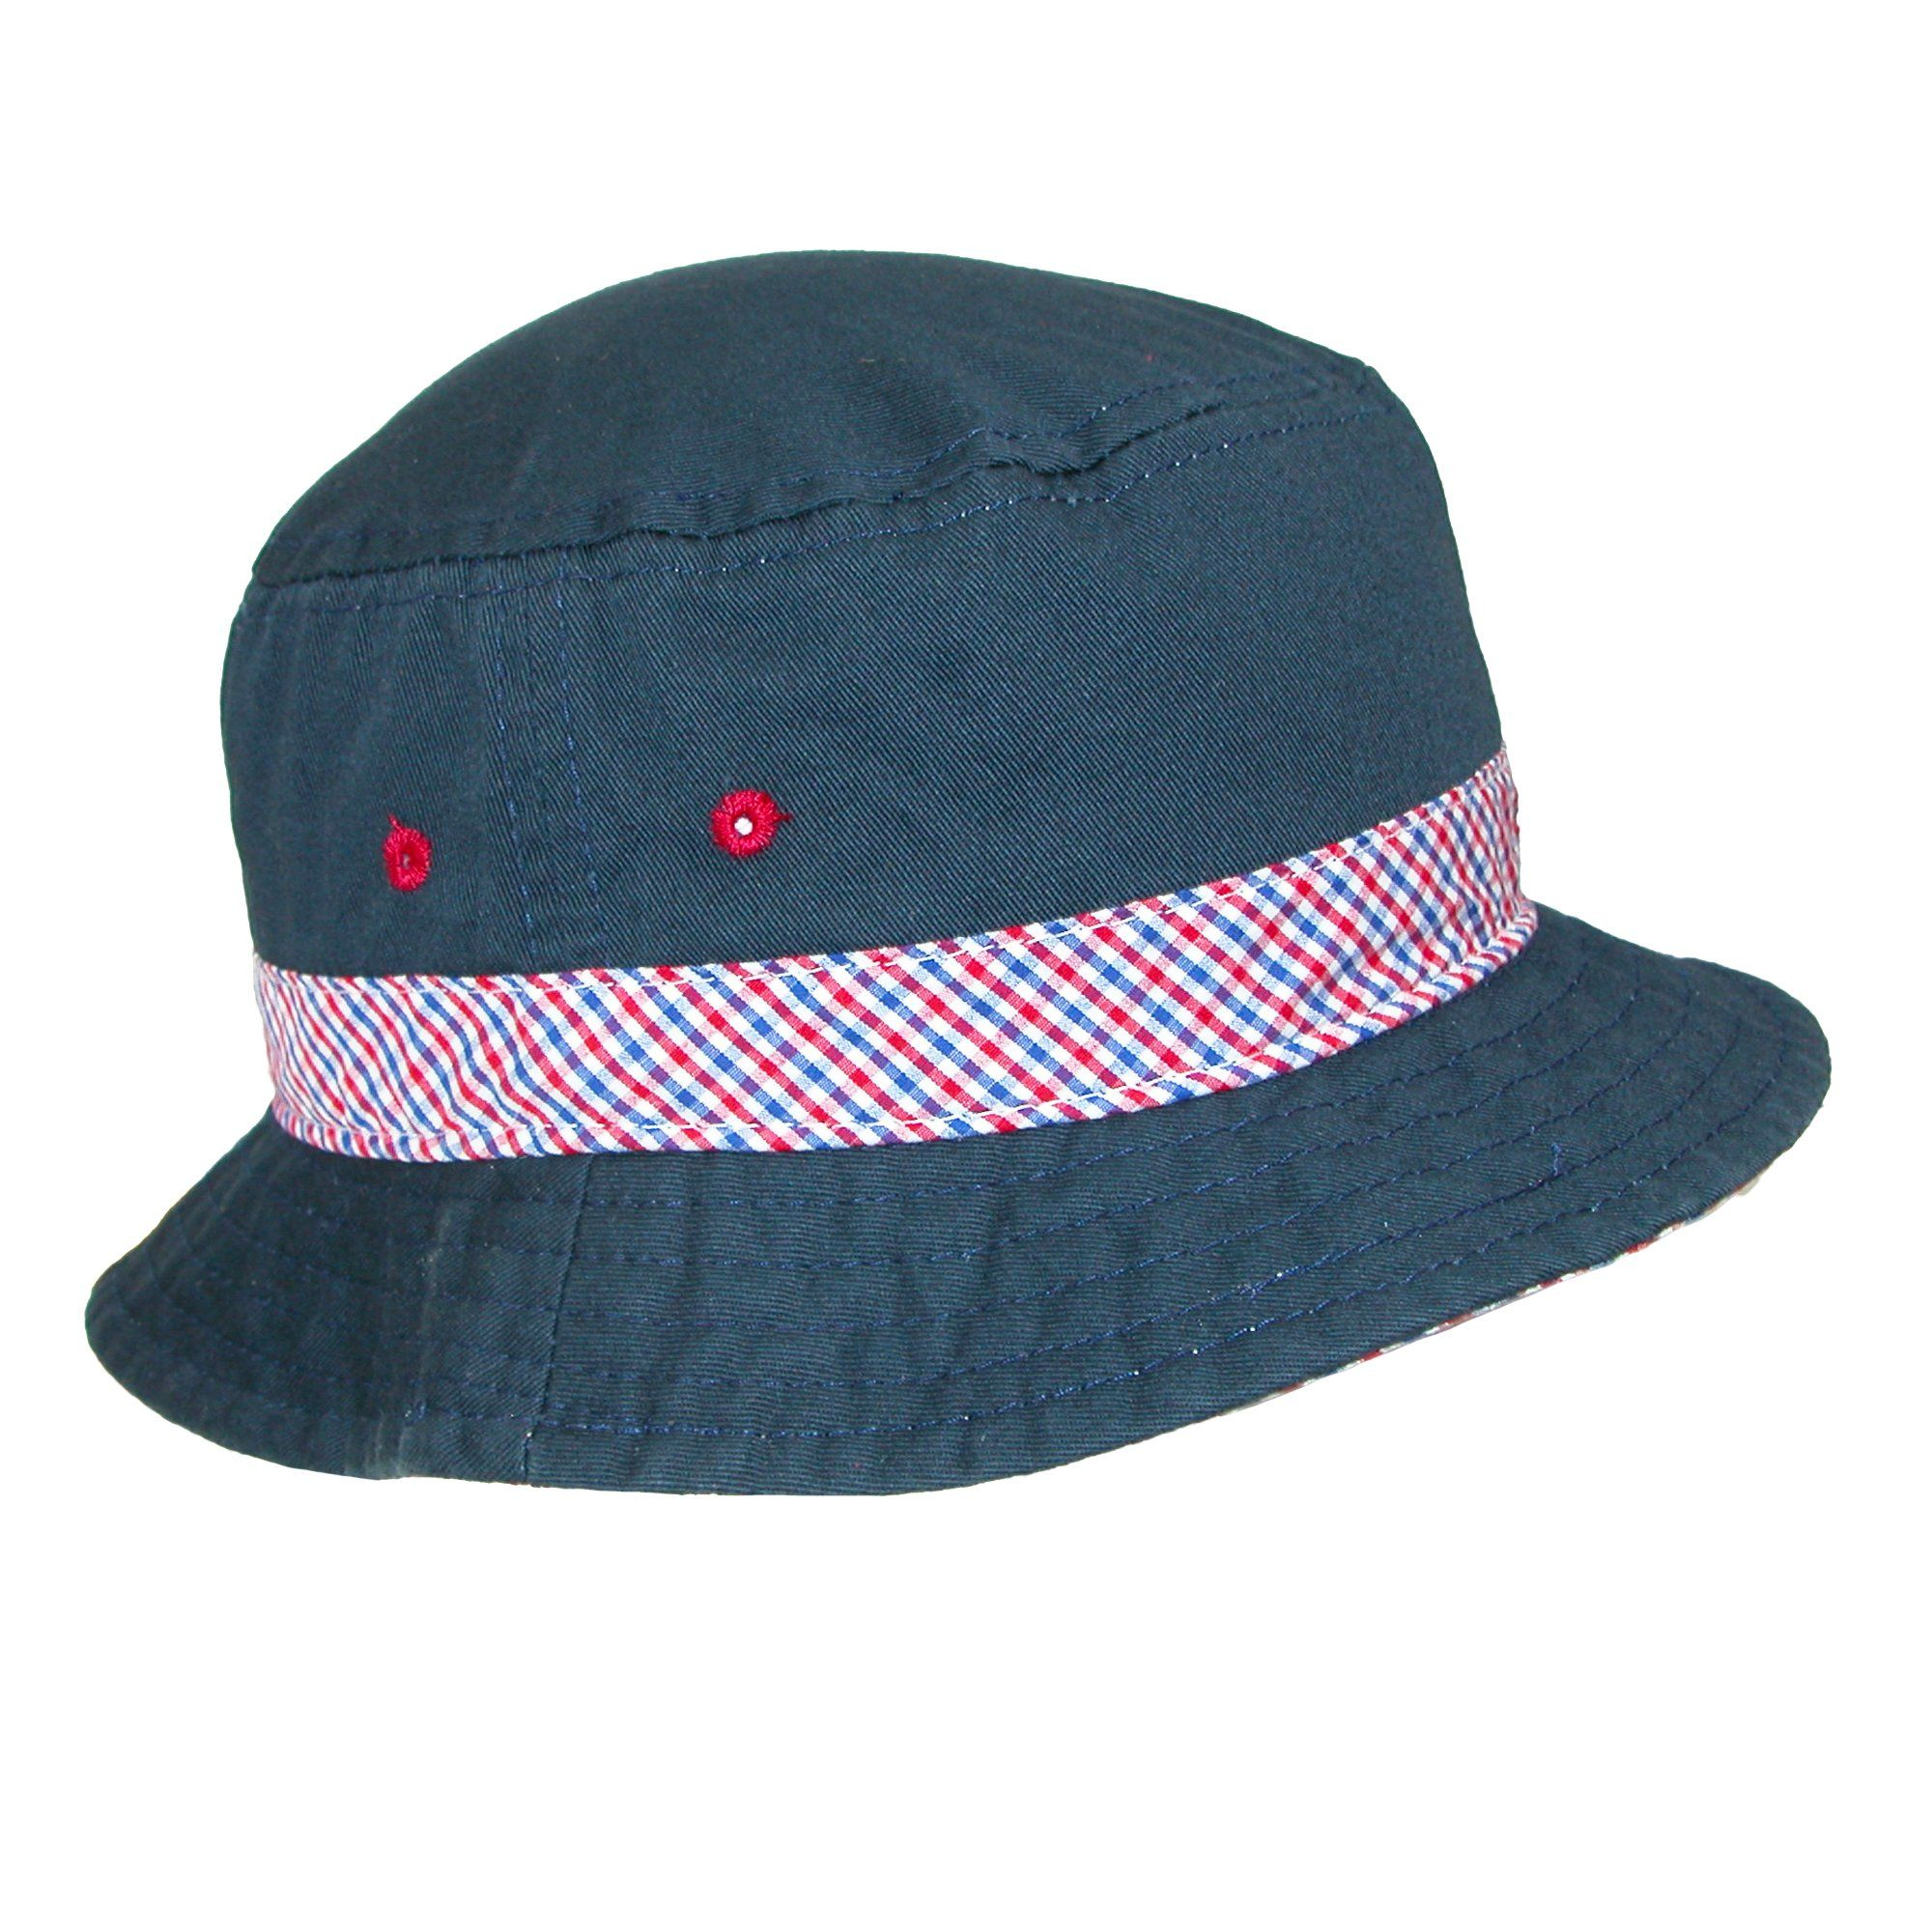 7a583175af6d7 Scala Kids  Nautical Cotton Bucket Hat with Contrast Hatband and Underbrim